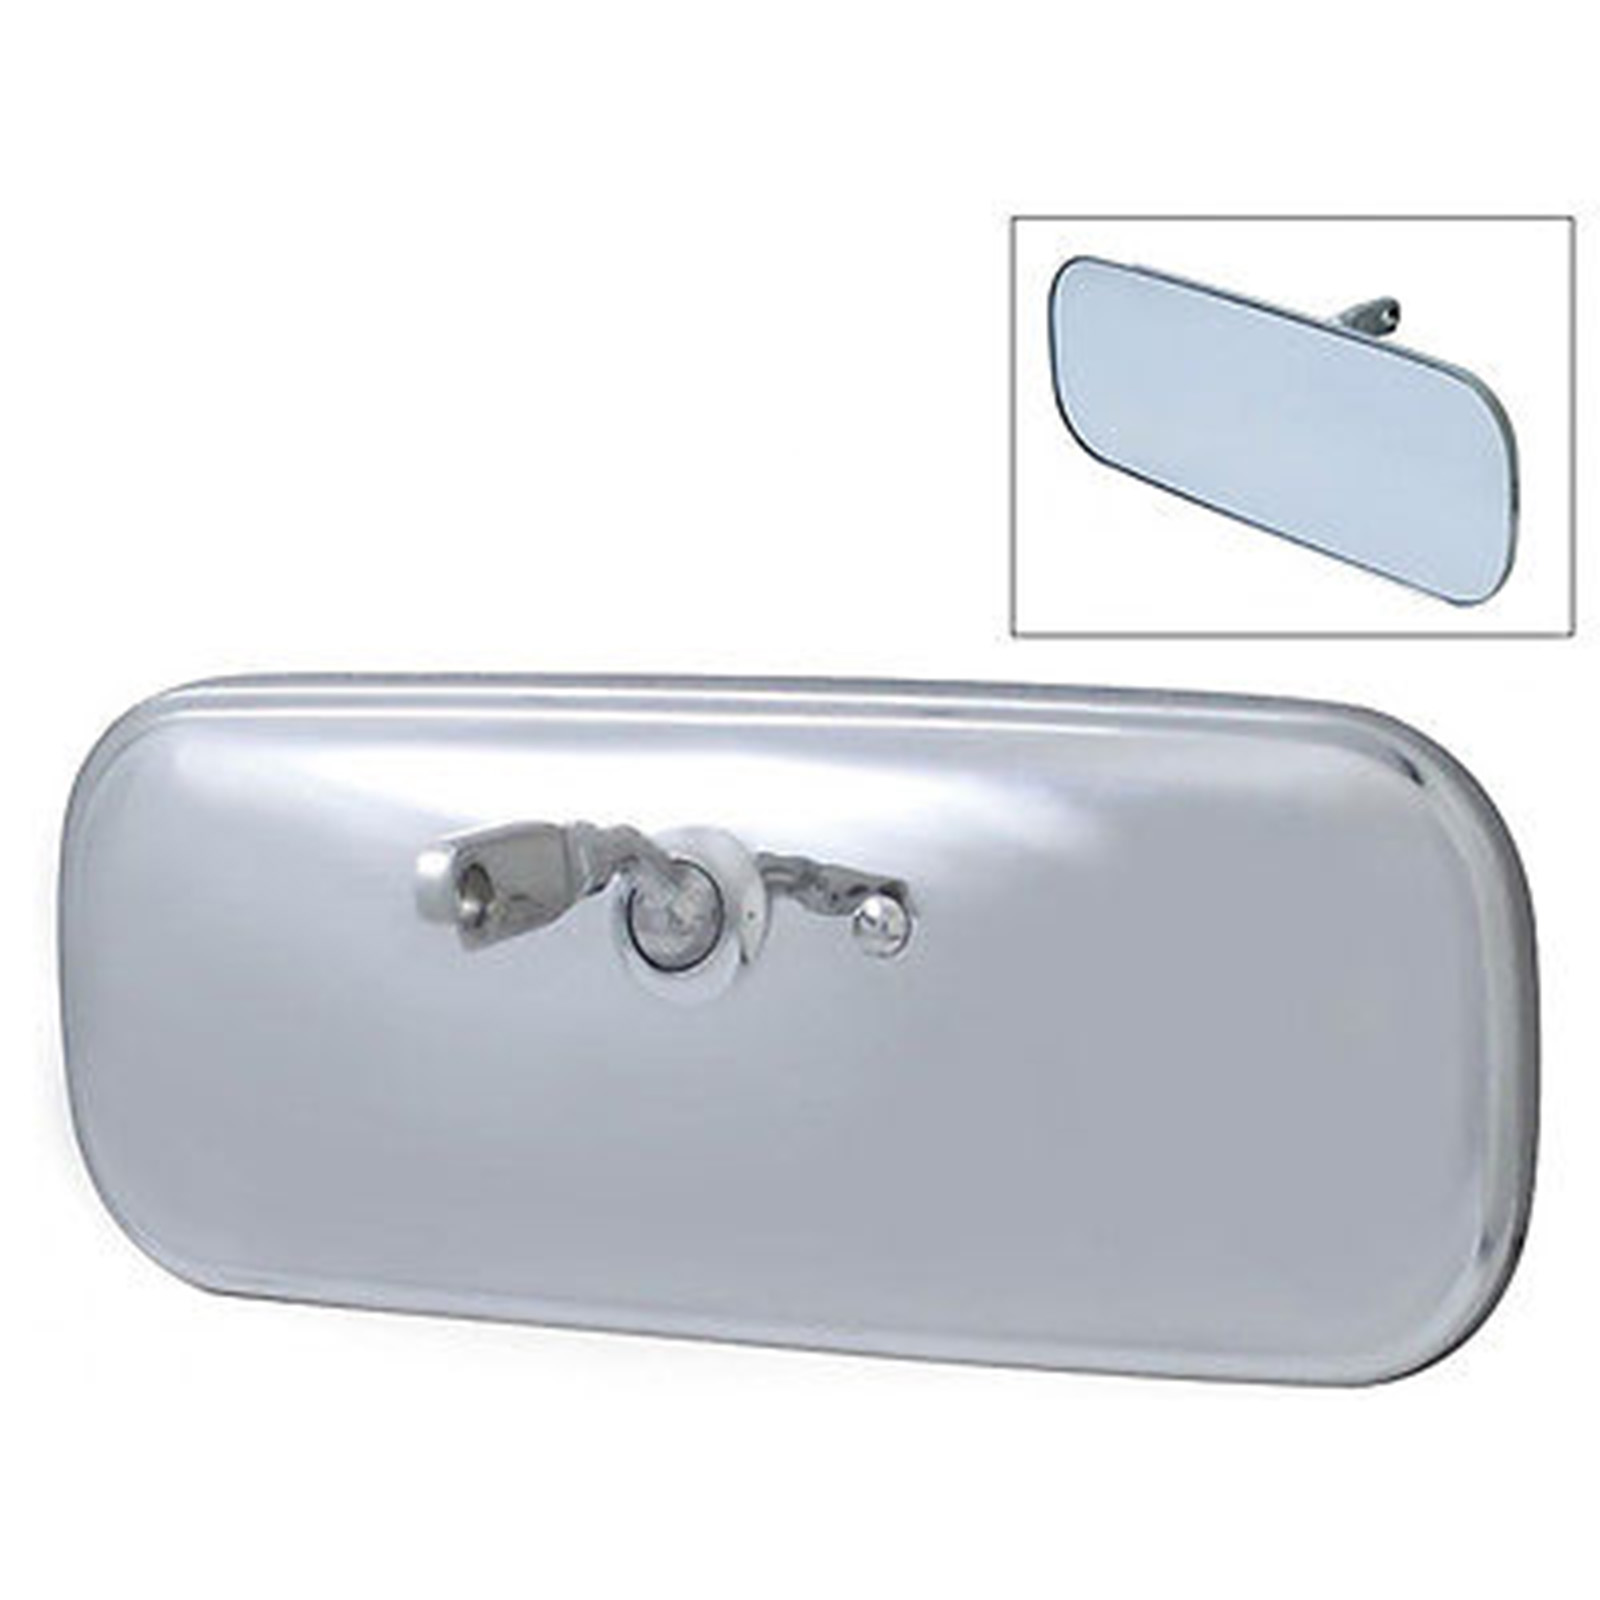 60 71 chevy gmc pickup truck stainless interior rear view glass mirror bracket 636676504957 ebay for Interior rear view mirror replacement glass